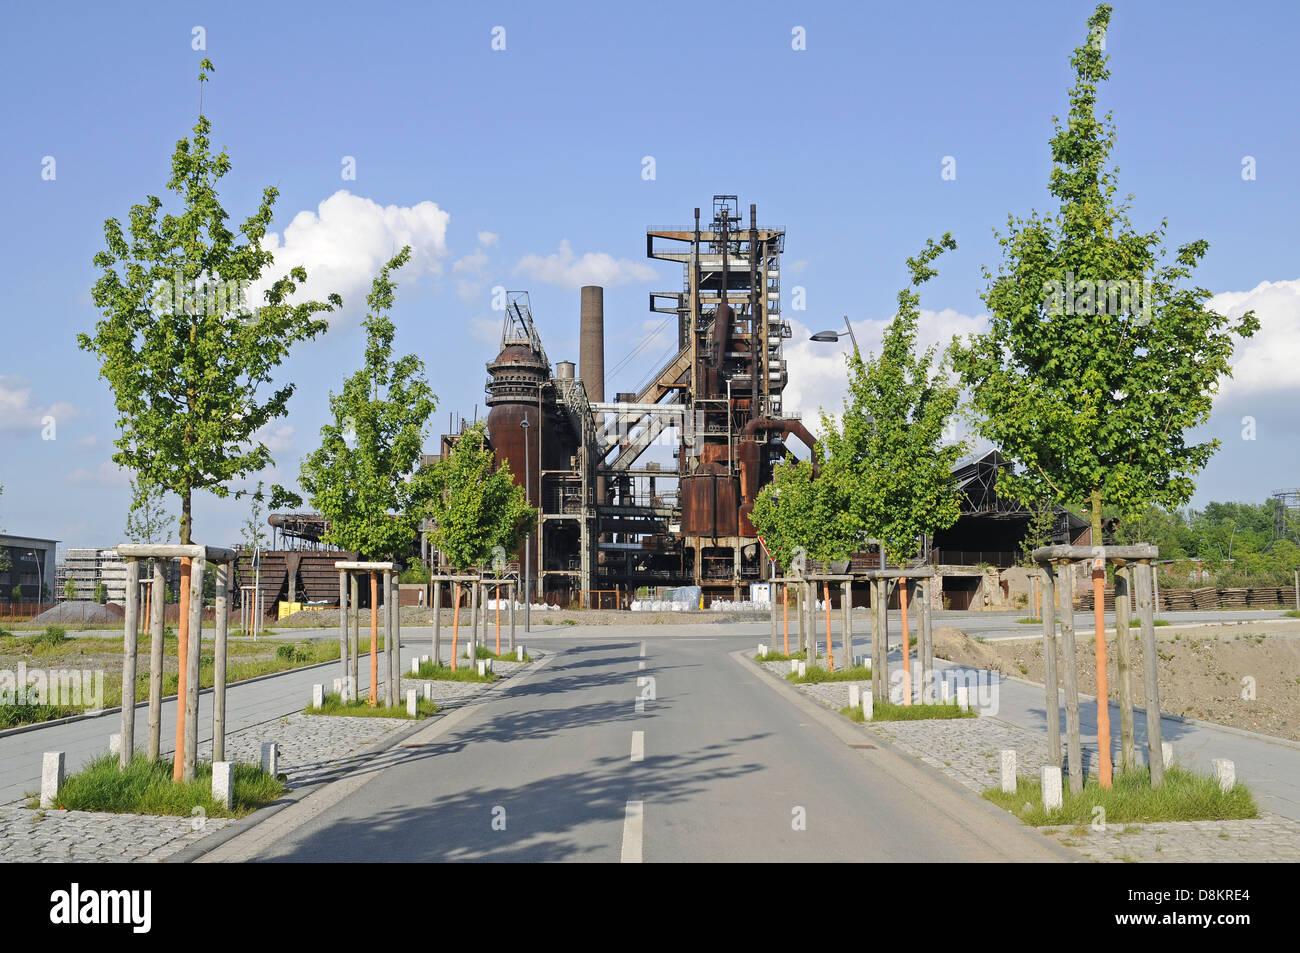 former steel plant - Stock Image